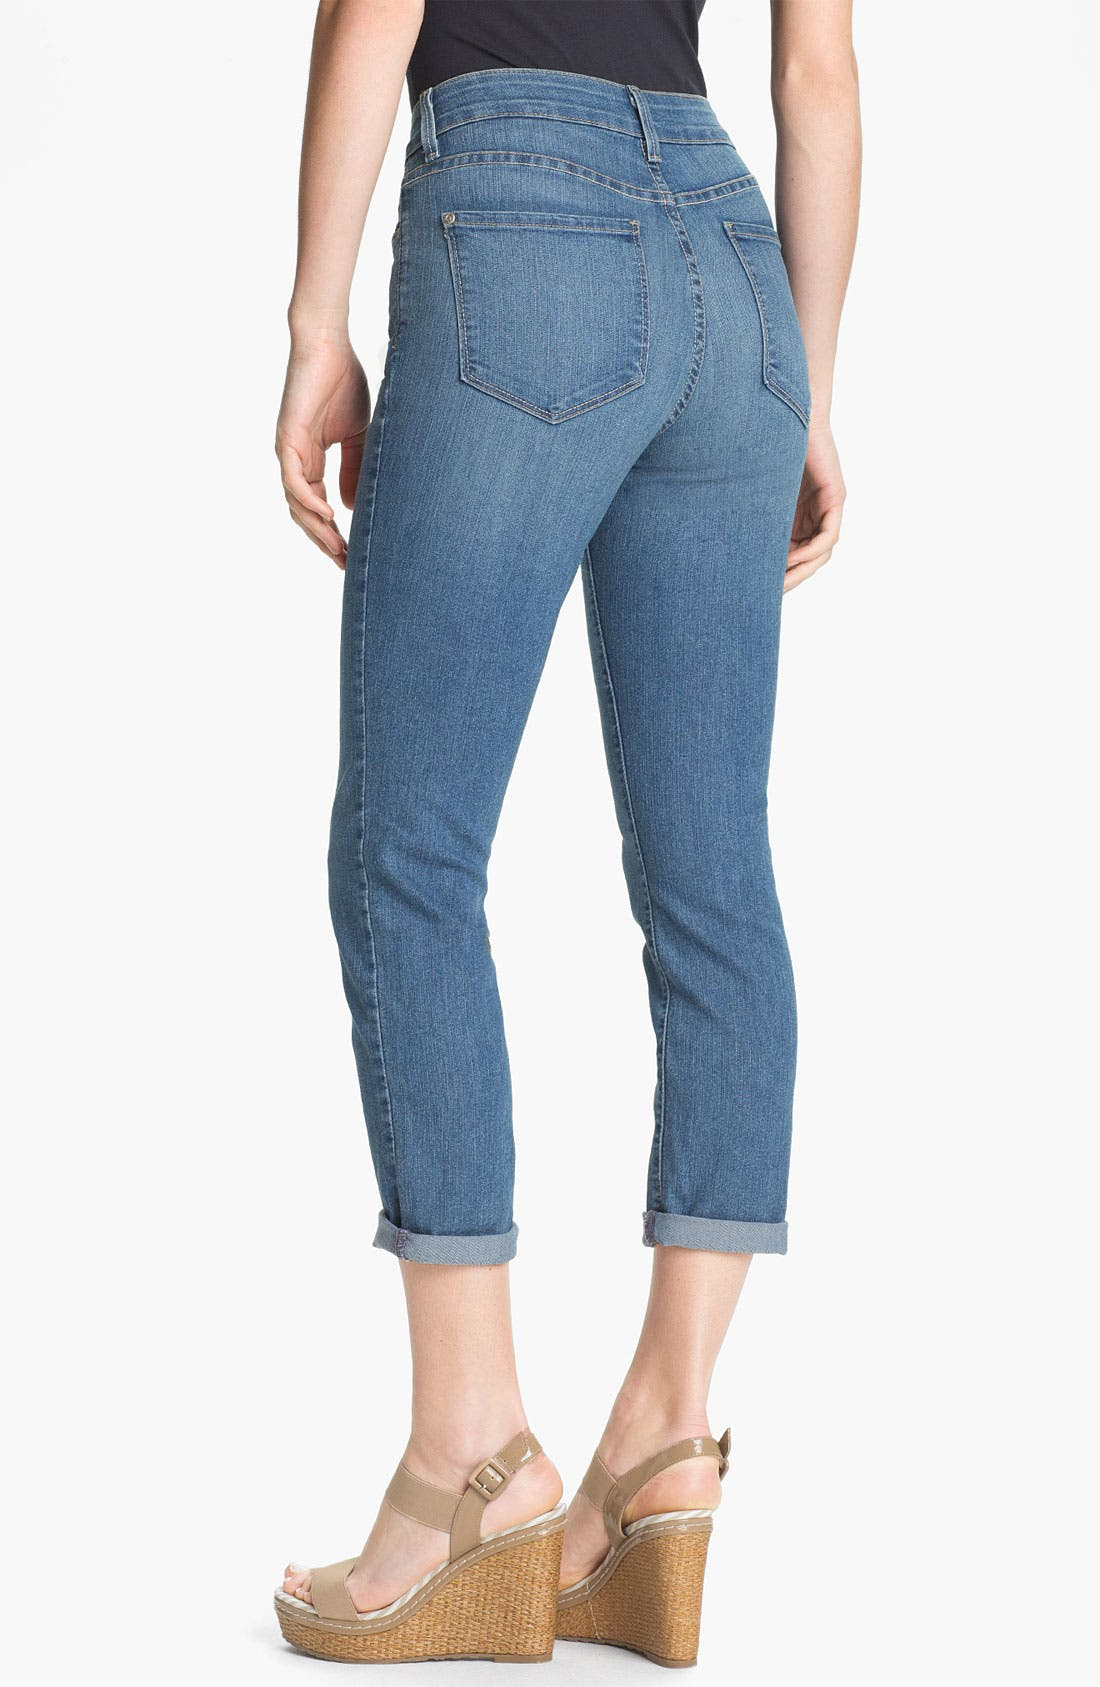 Alternate Image 2  - NYDJ 'Tanya' Cuffed Stretch Boyfriend Jeans (Petite)